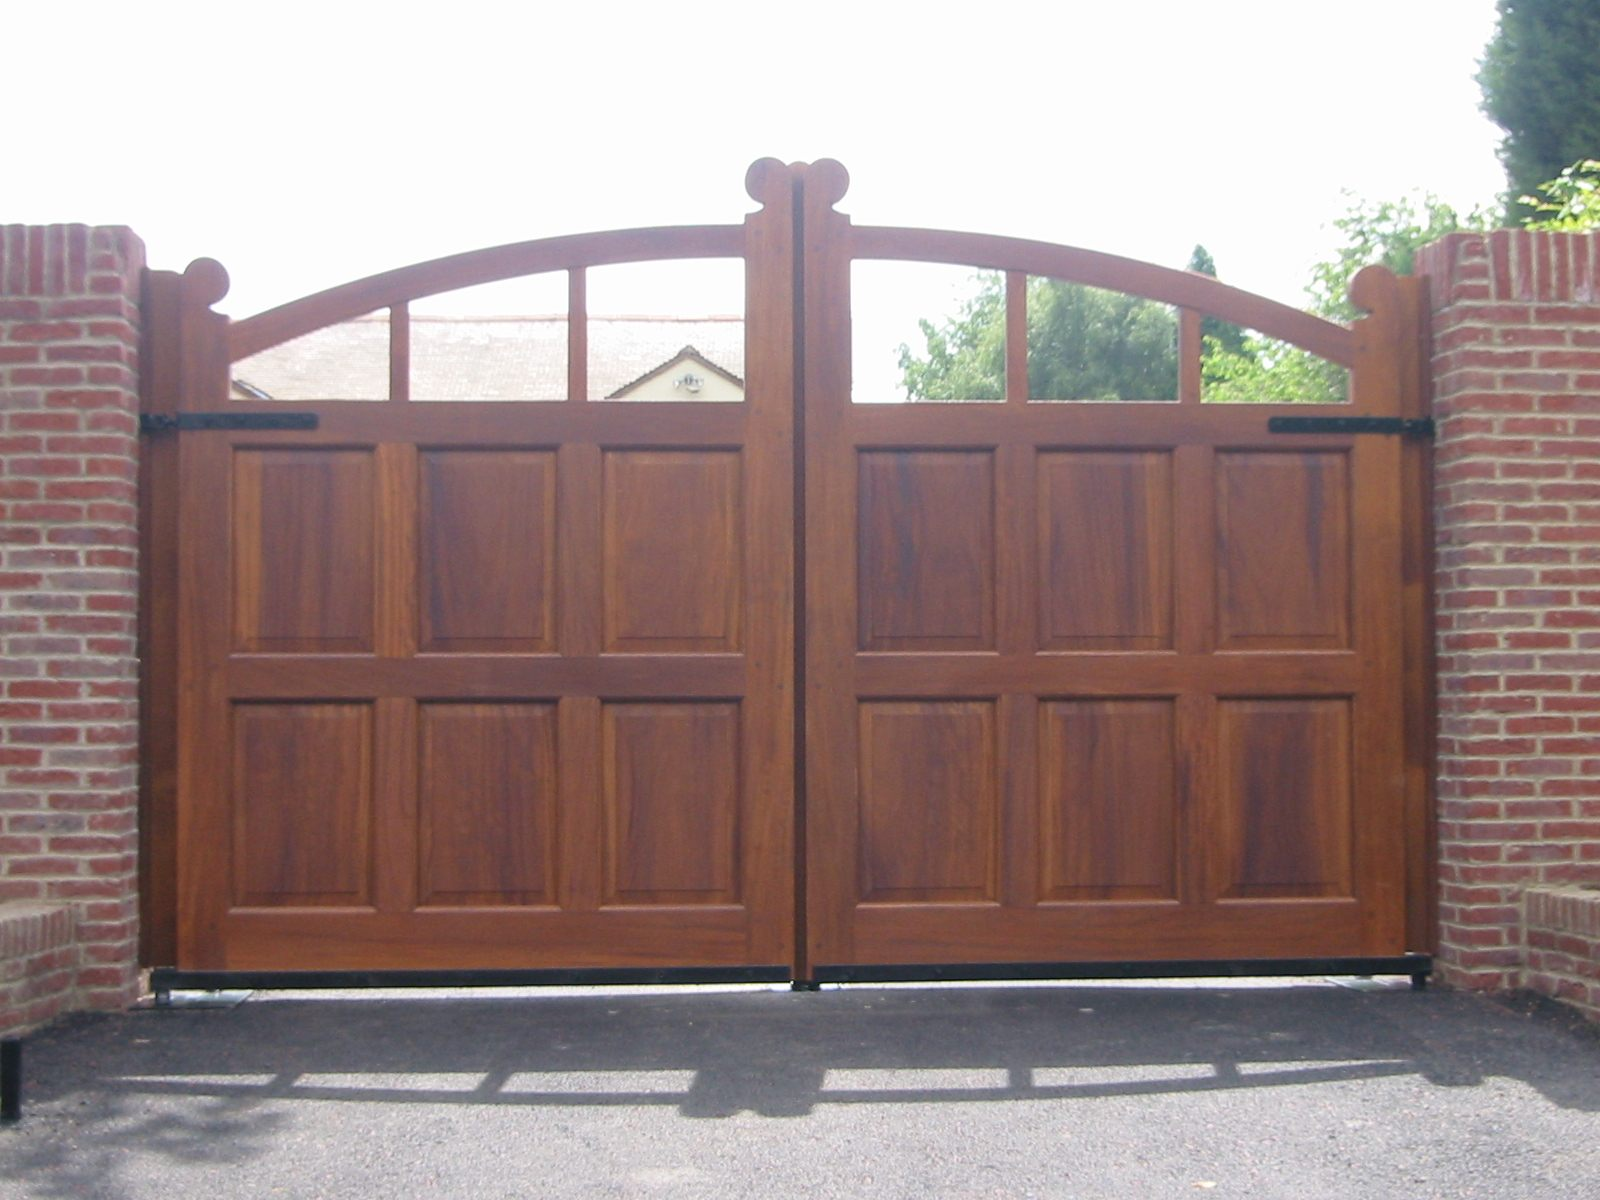 Automated Gates in Newcastle Upon Tyne